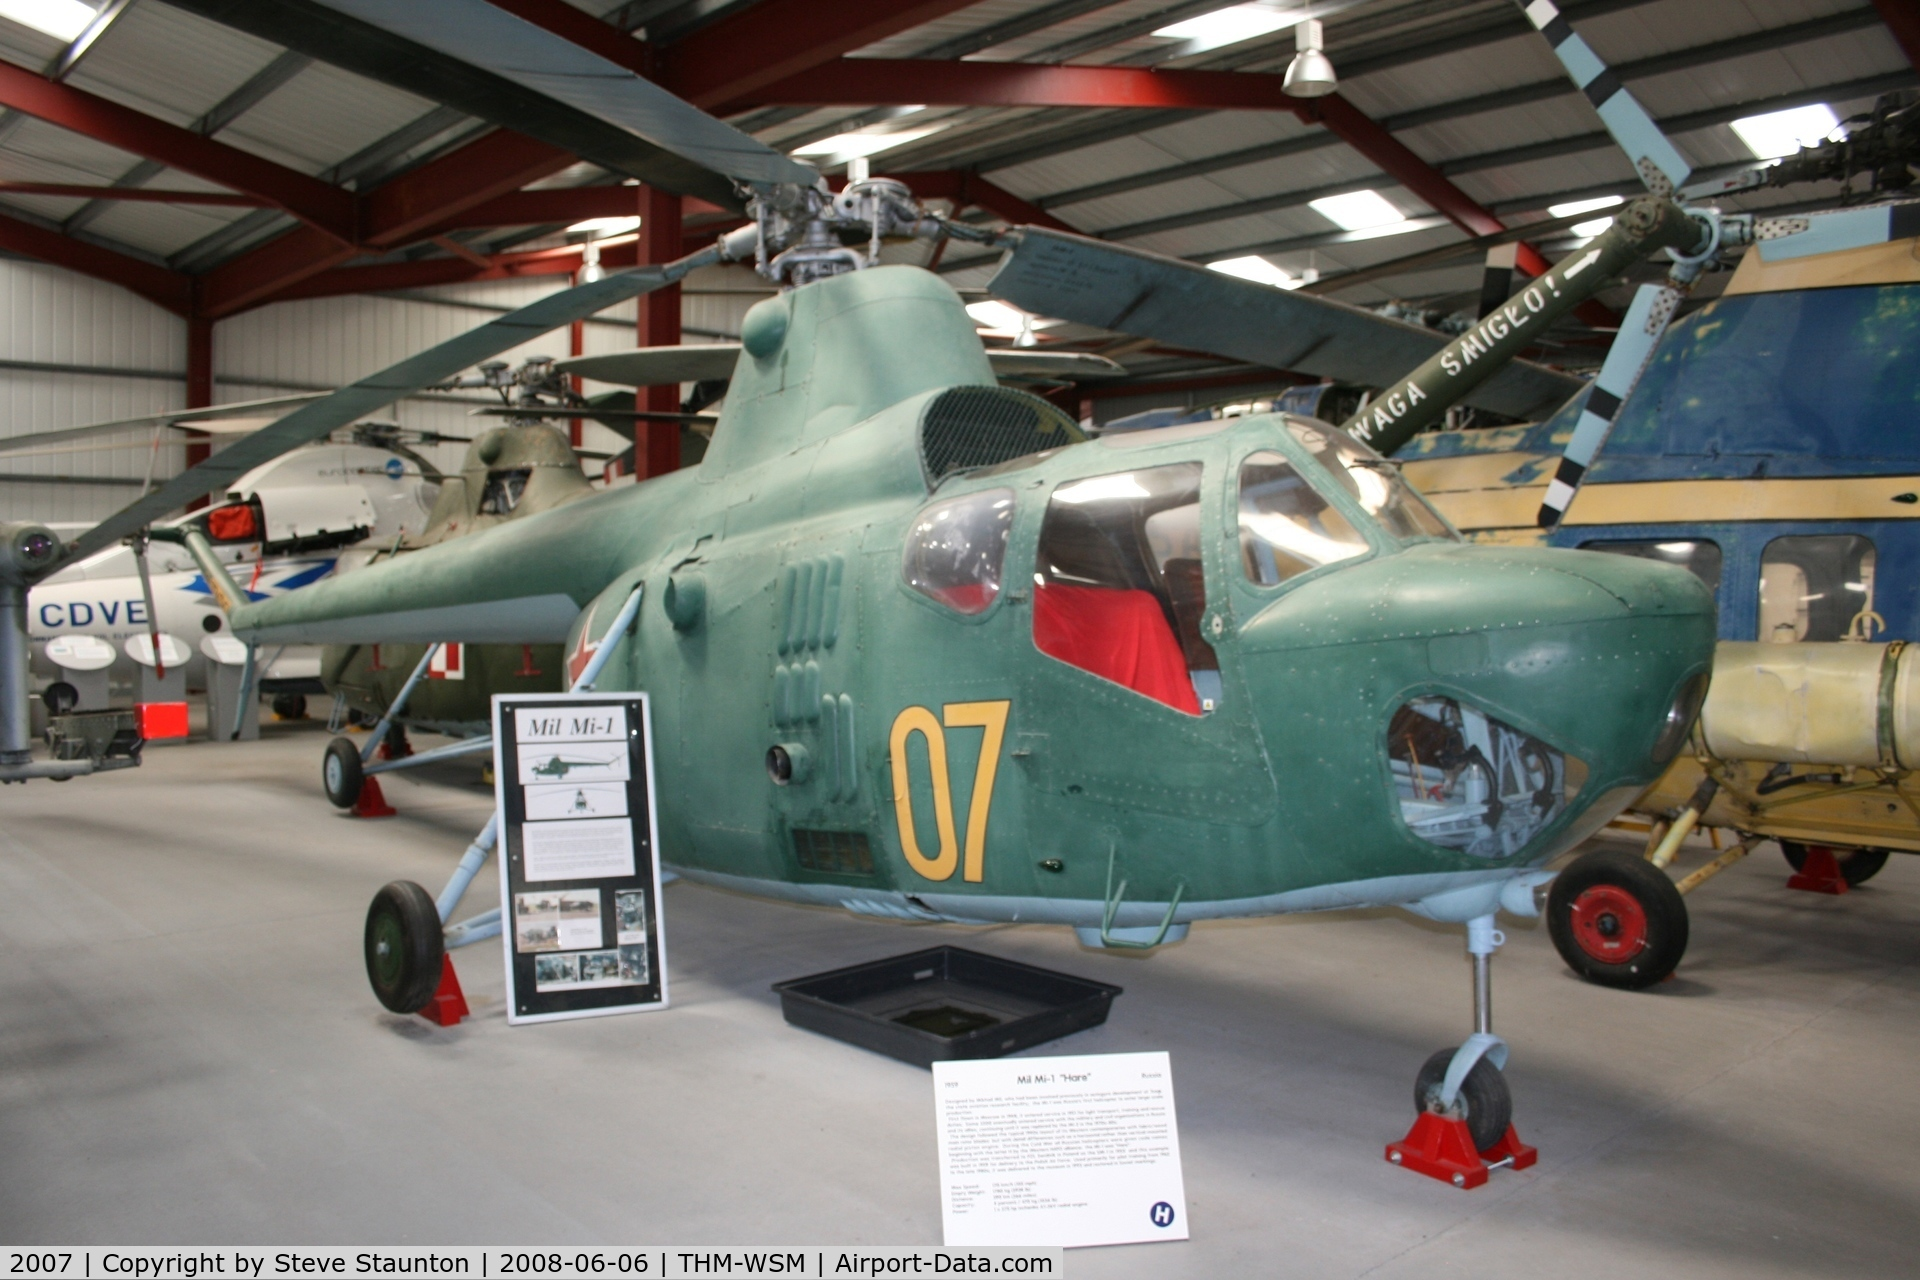 2007, 1961 PZL-Swidnik SM-2 C/N S2-03006, Taken at the Helicopter Museum (http://www.helicoptermuseum.co.uk/)